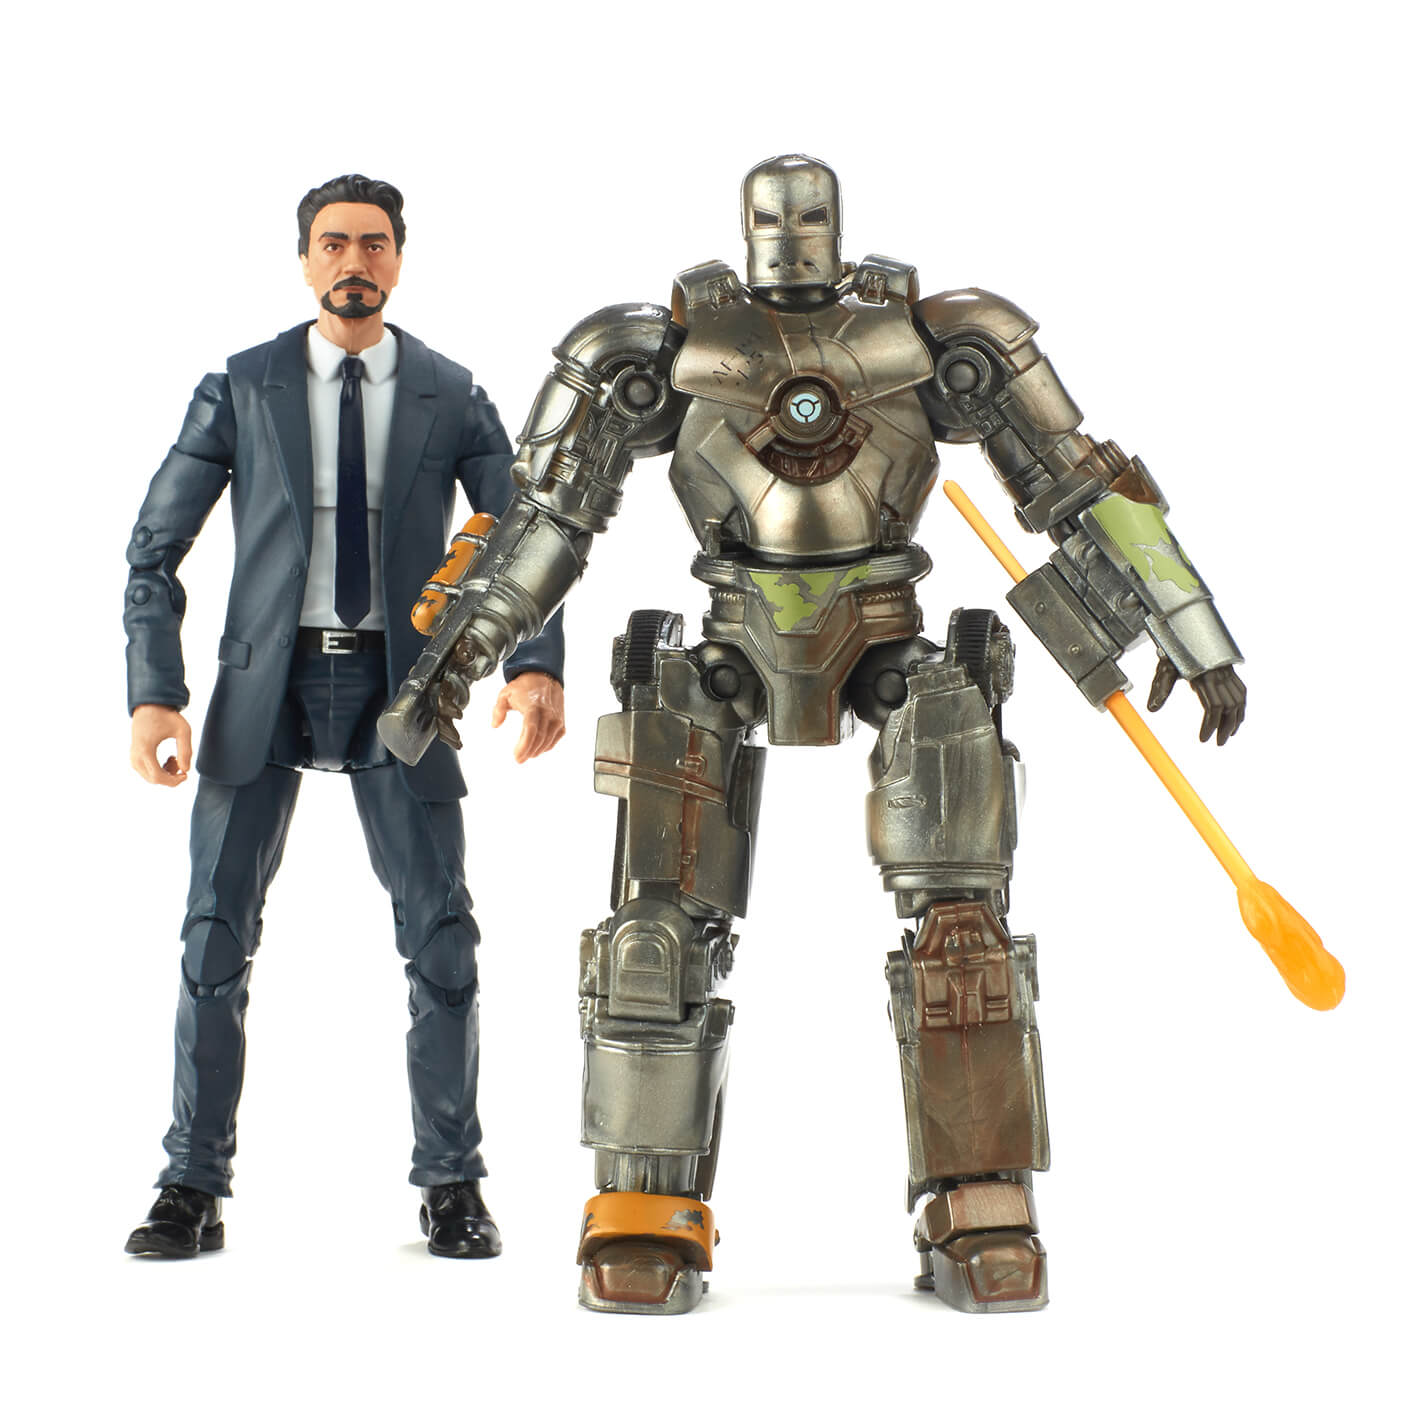 Hasbro 2018 MCU Tony Stark and Iron Man Mark 1 2 pack